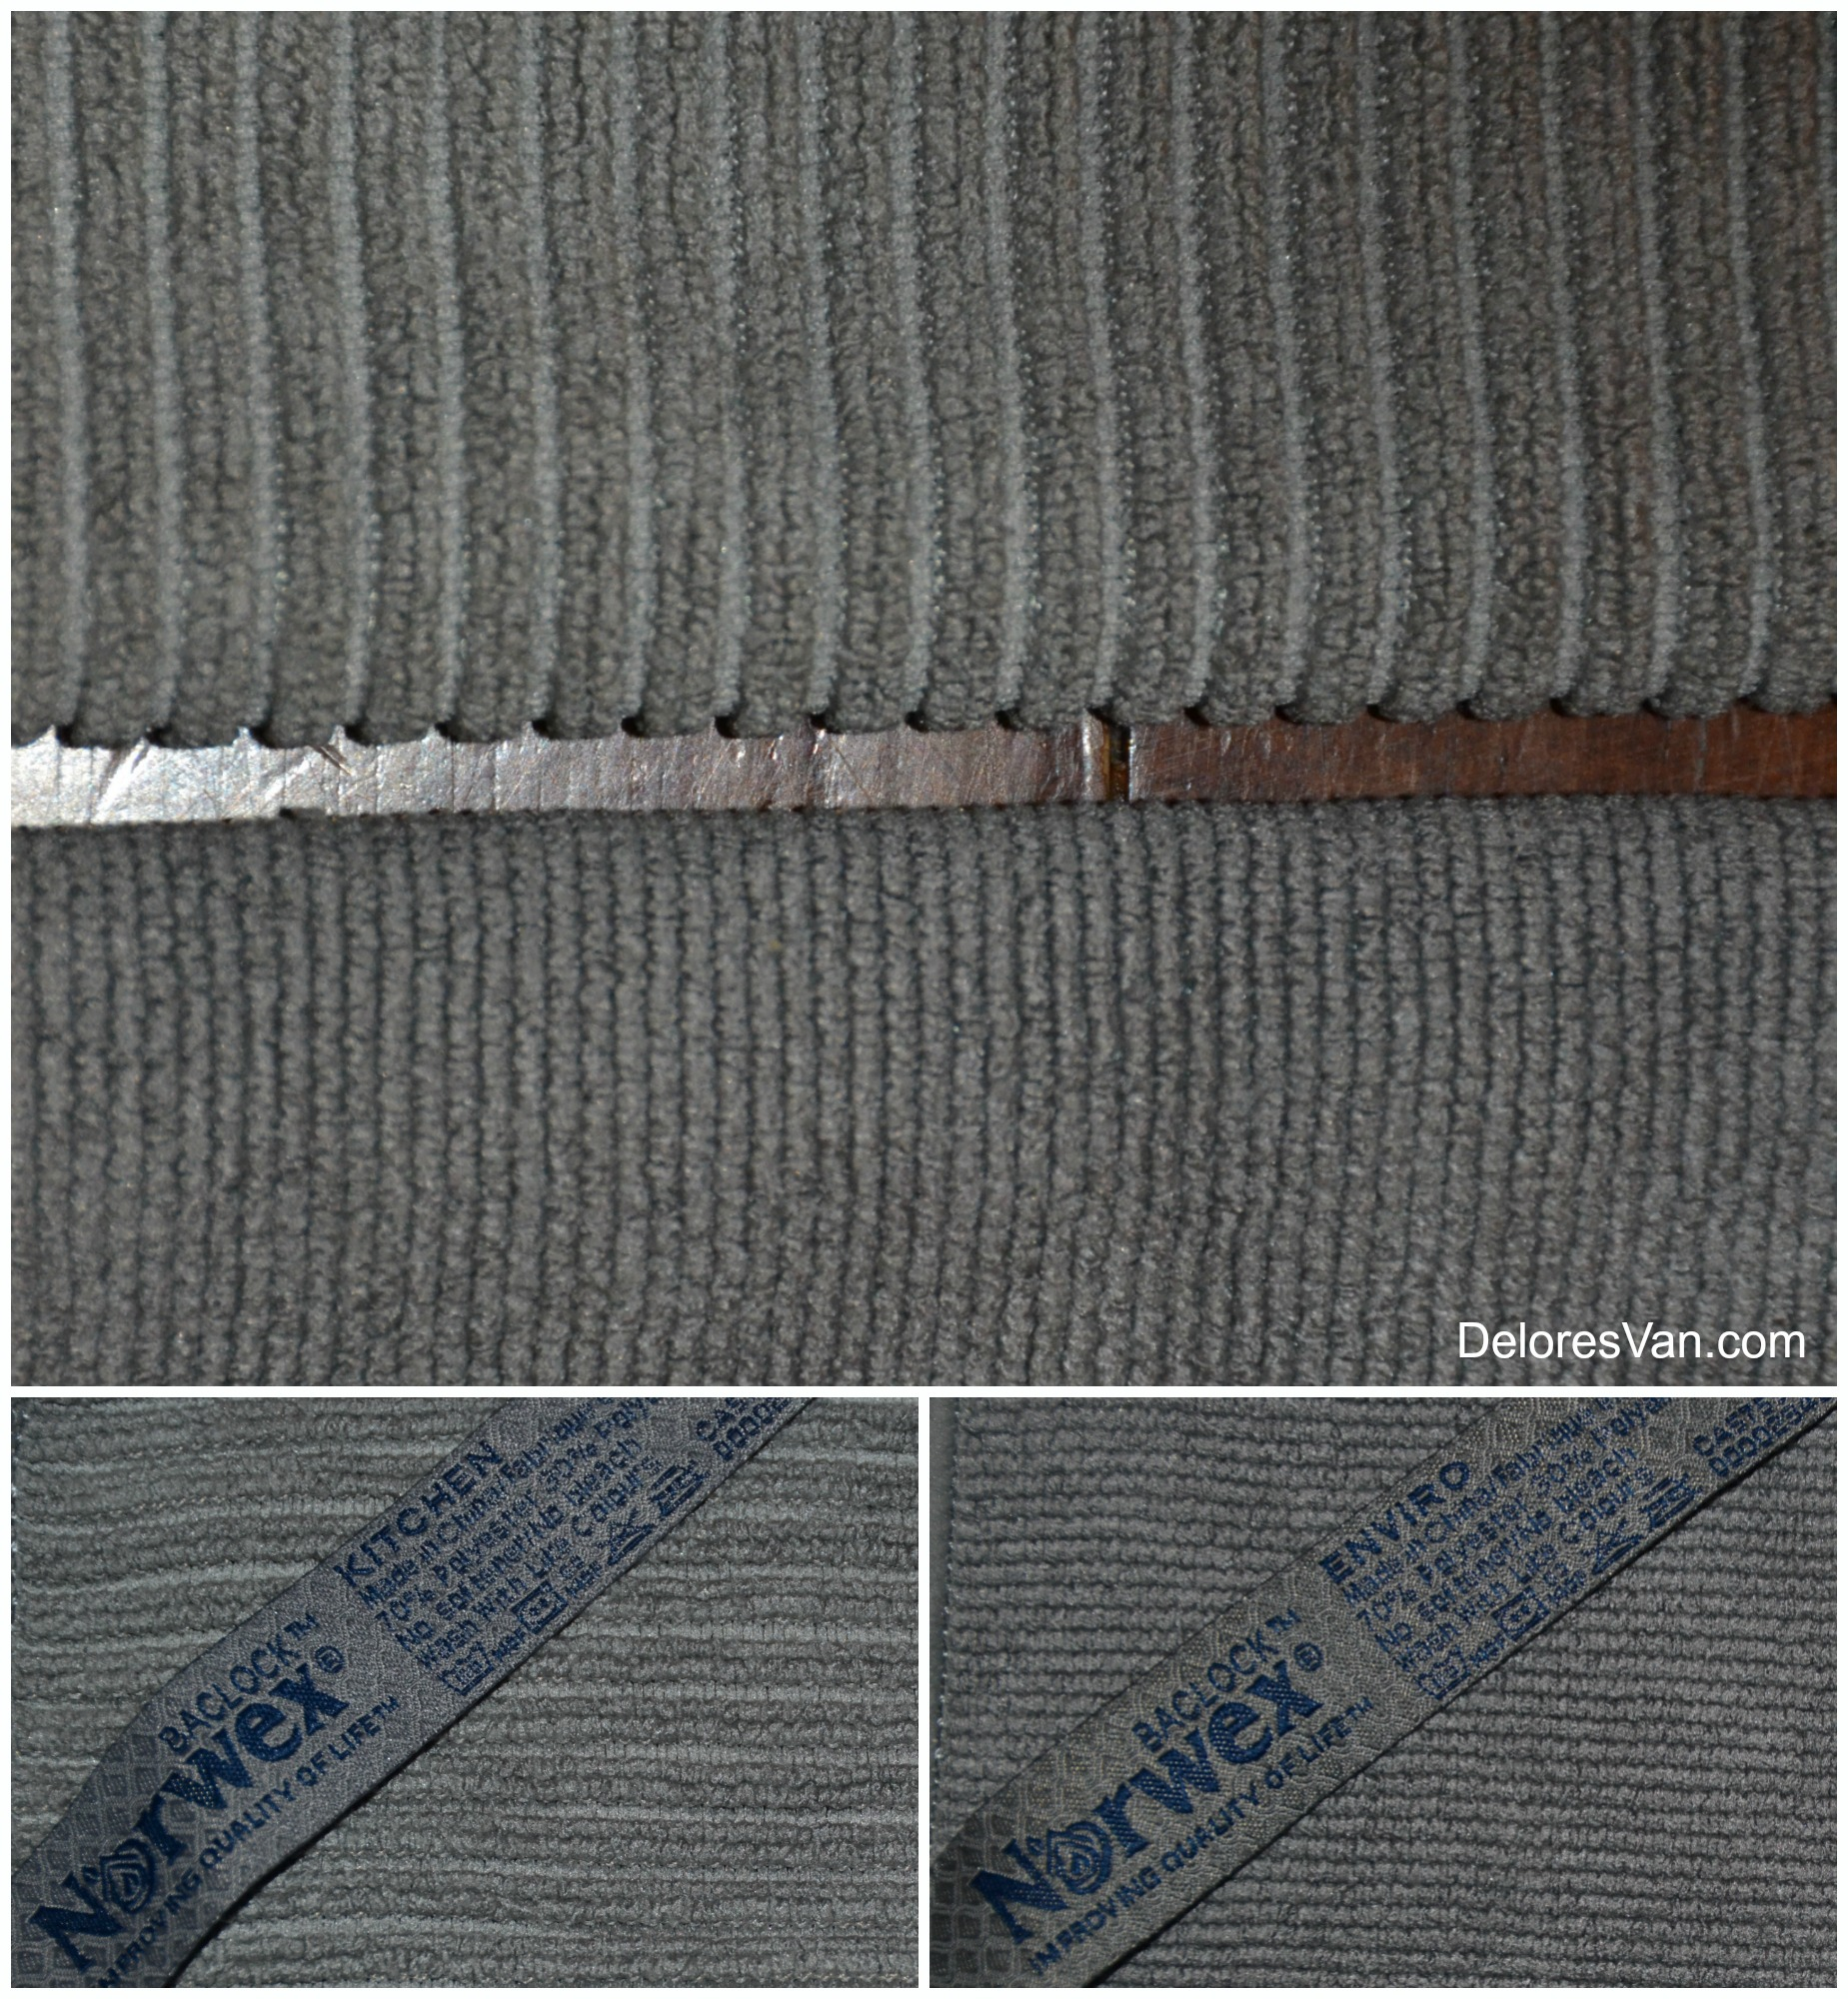 Norwex Kitchen Cloth vs. EnviroCloth – Clean Natural Living with ...